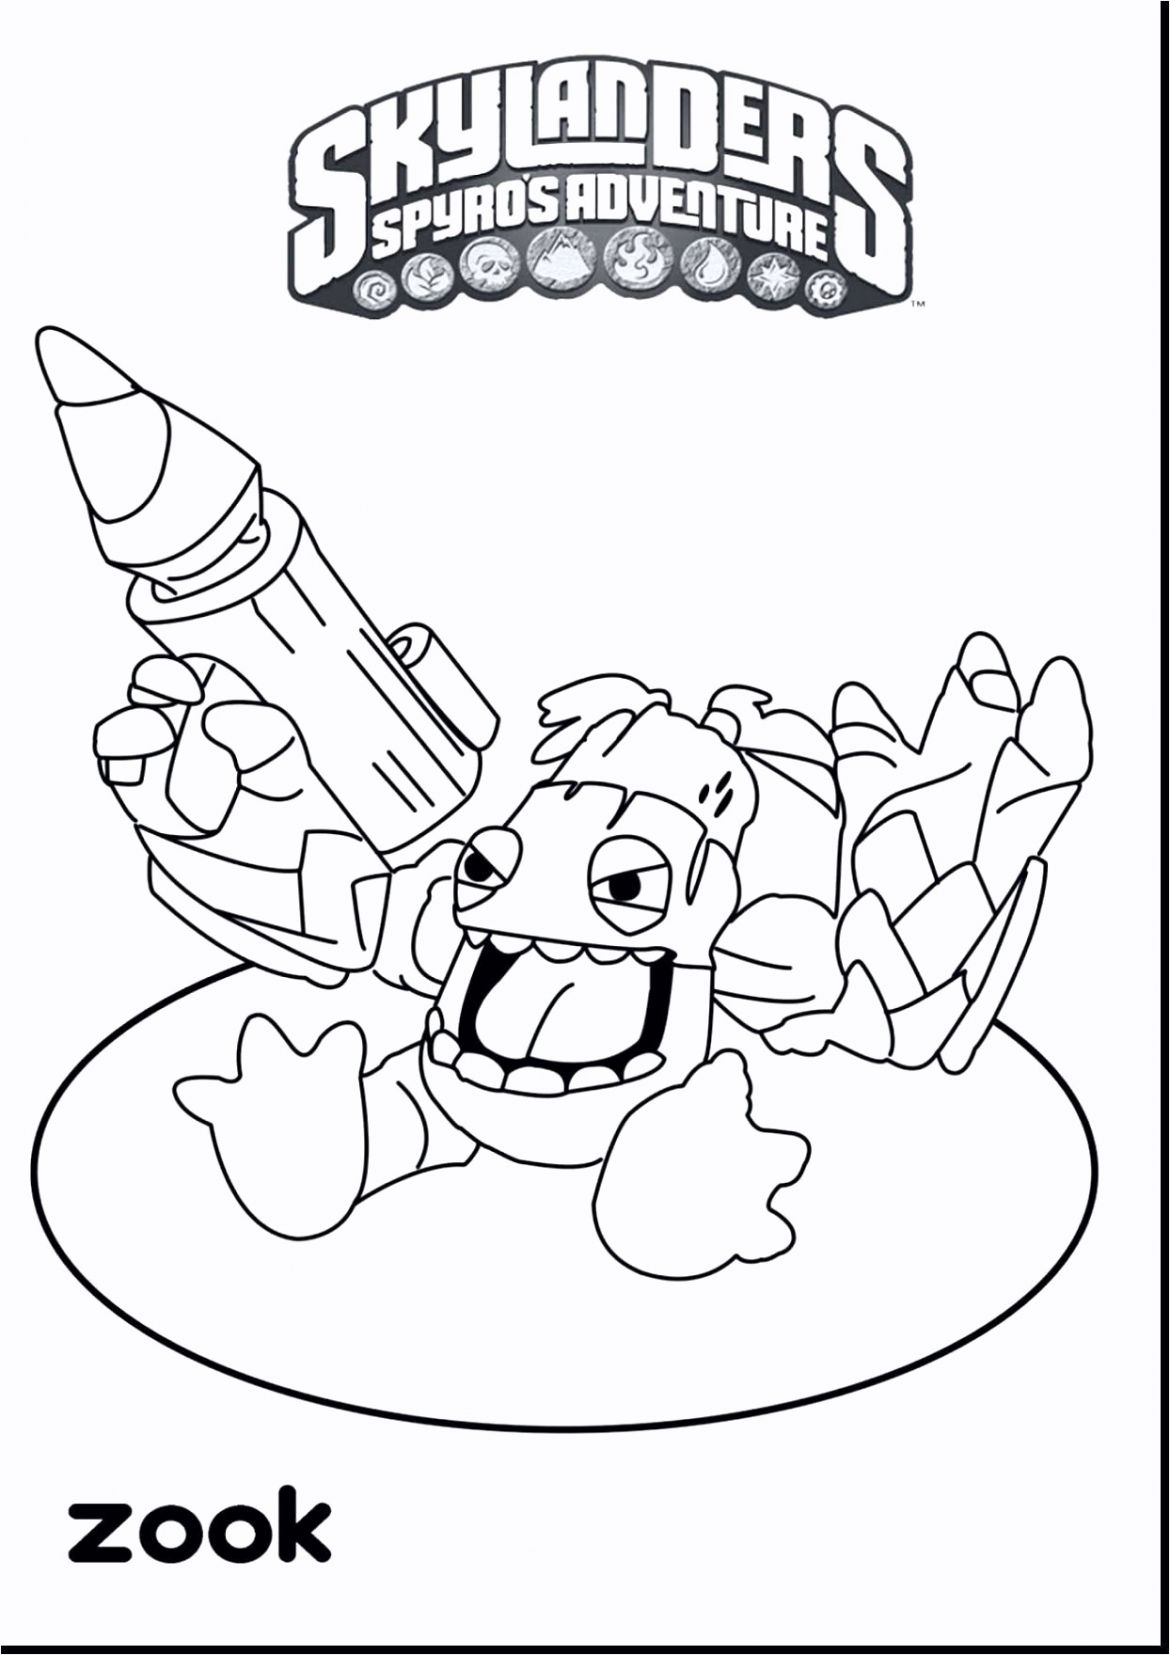 Gifts Coloring Pages  Printable 6d - Free For Children